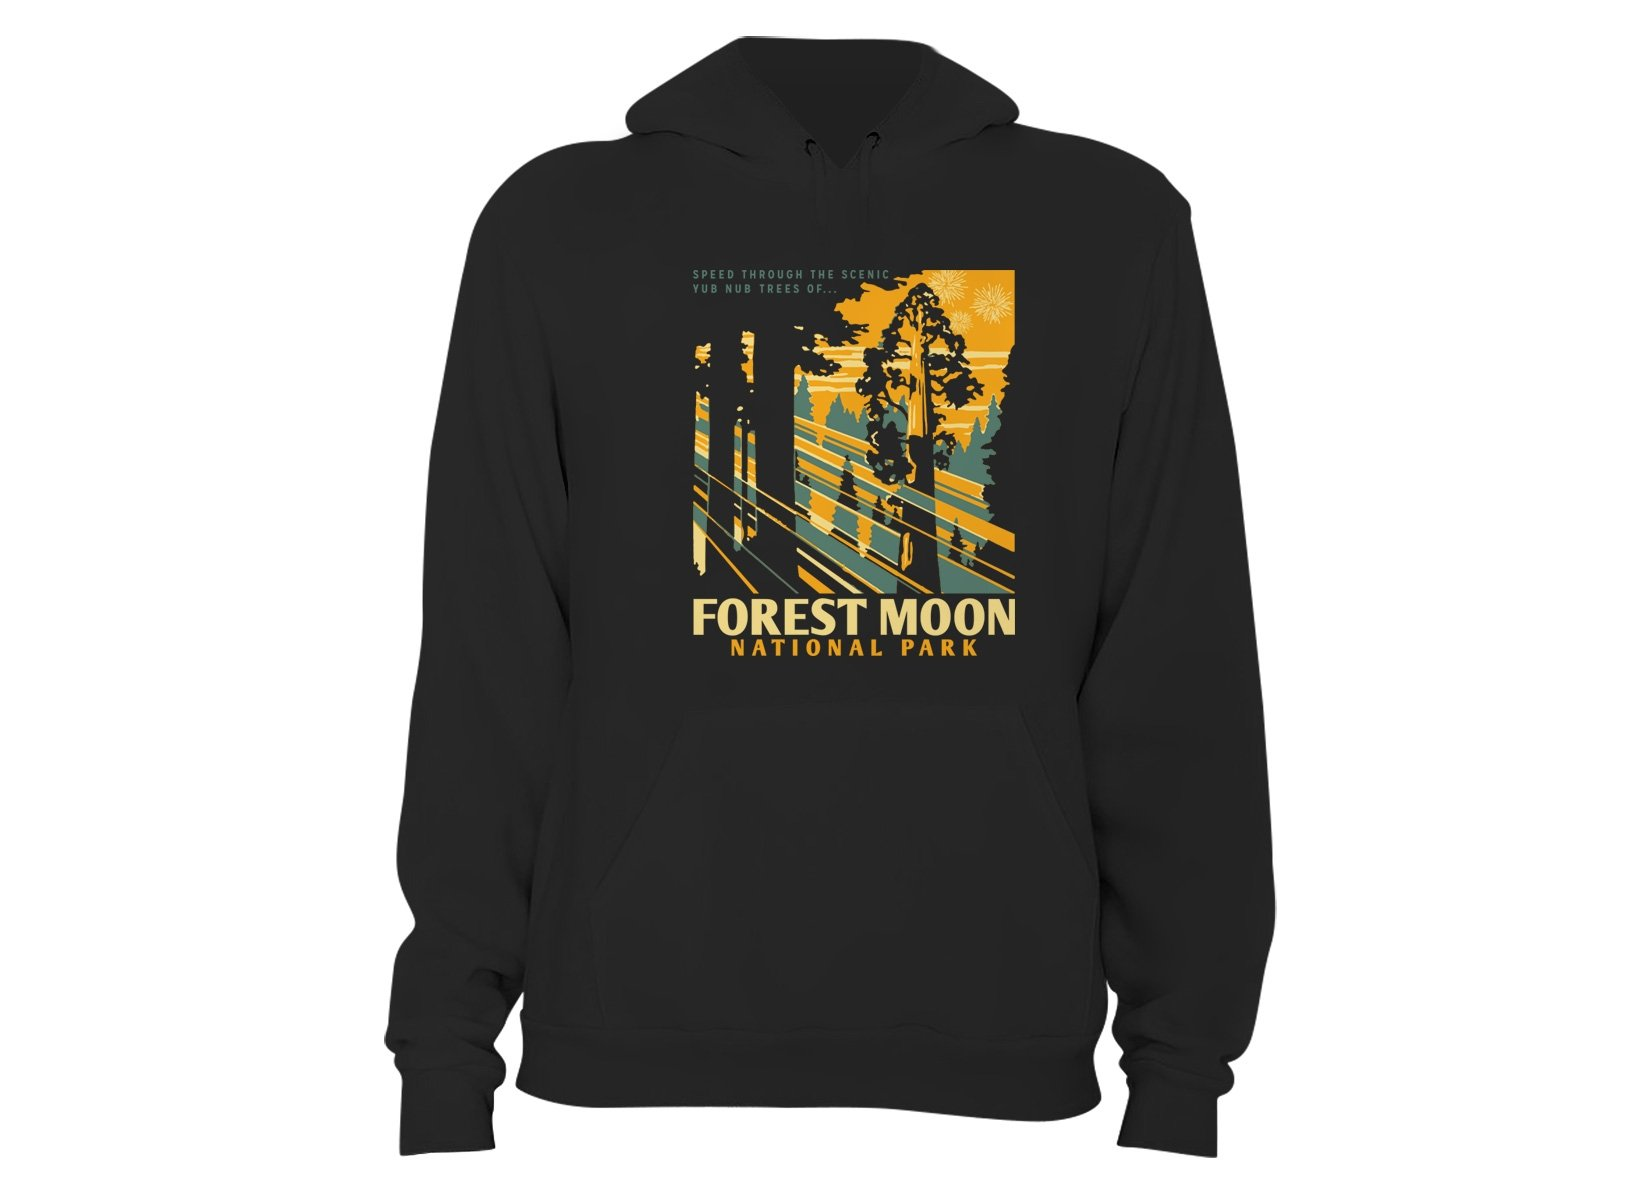 Forest Moon National Park on Hoodie